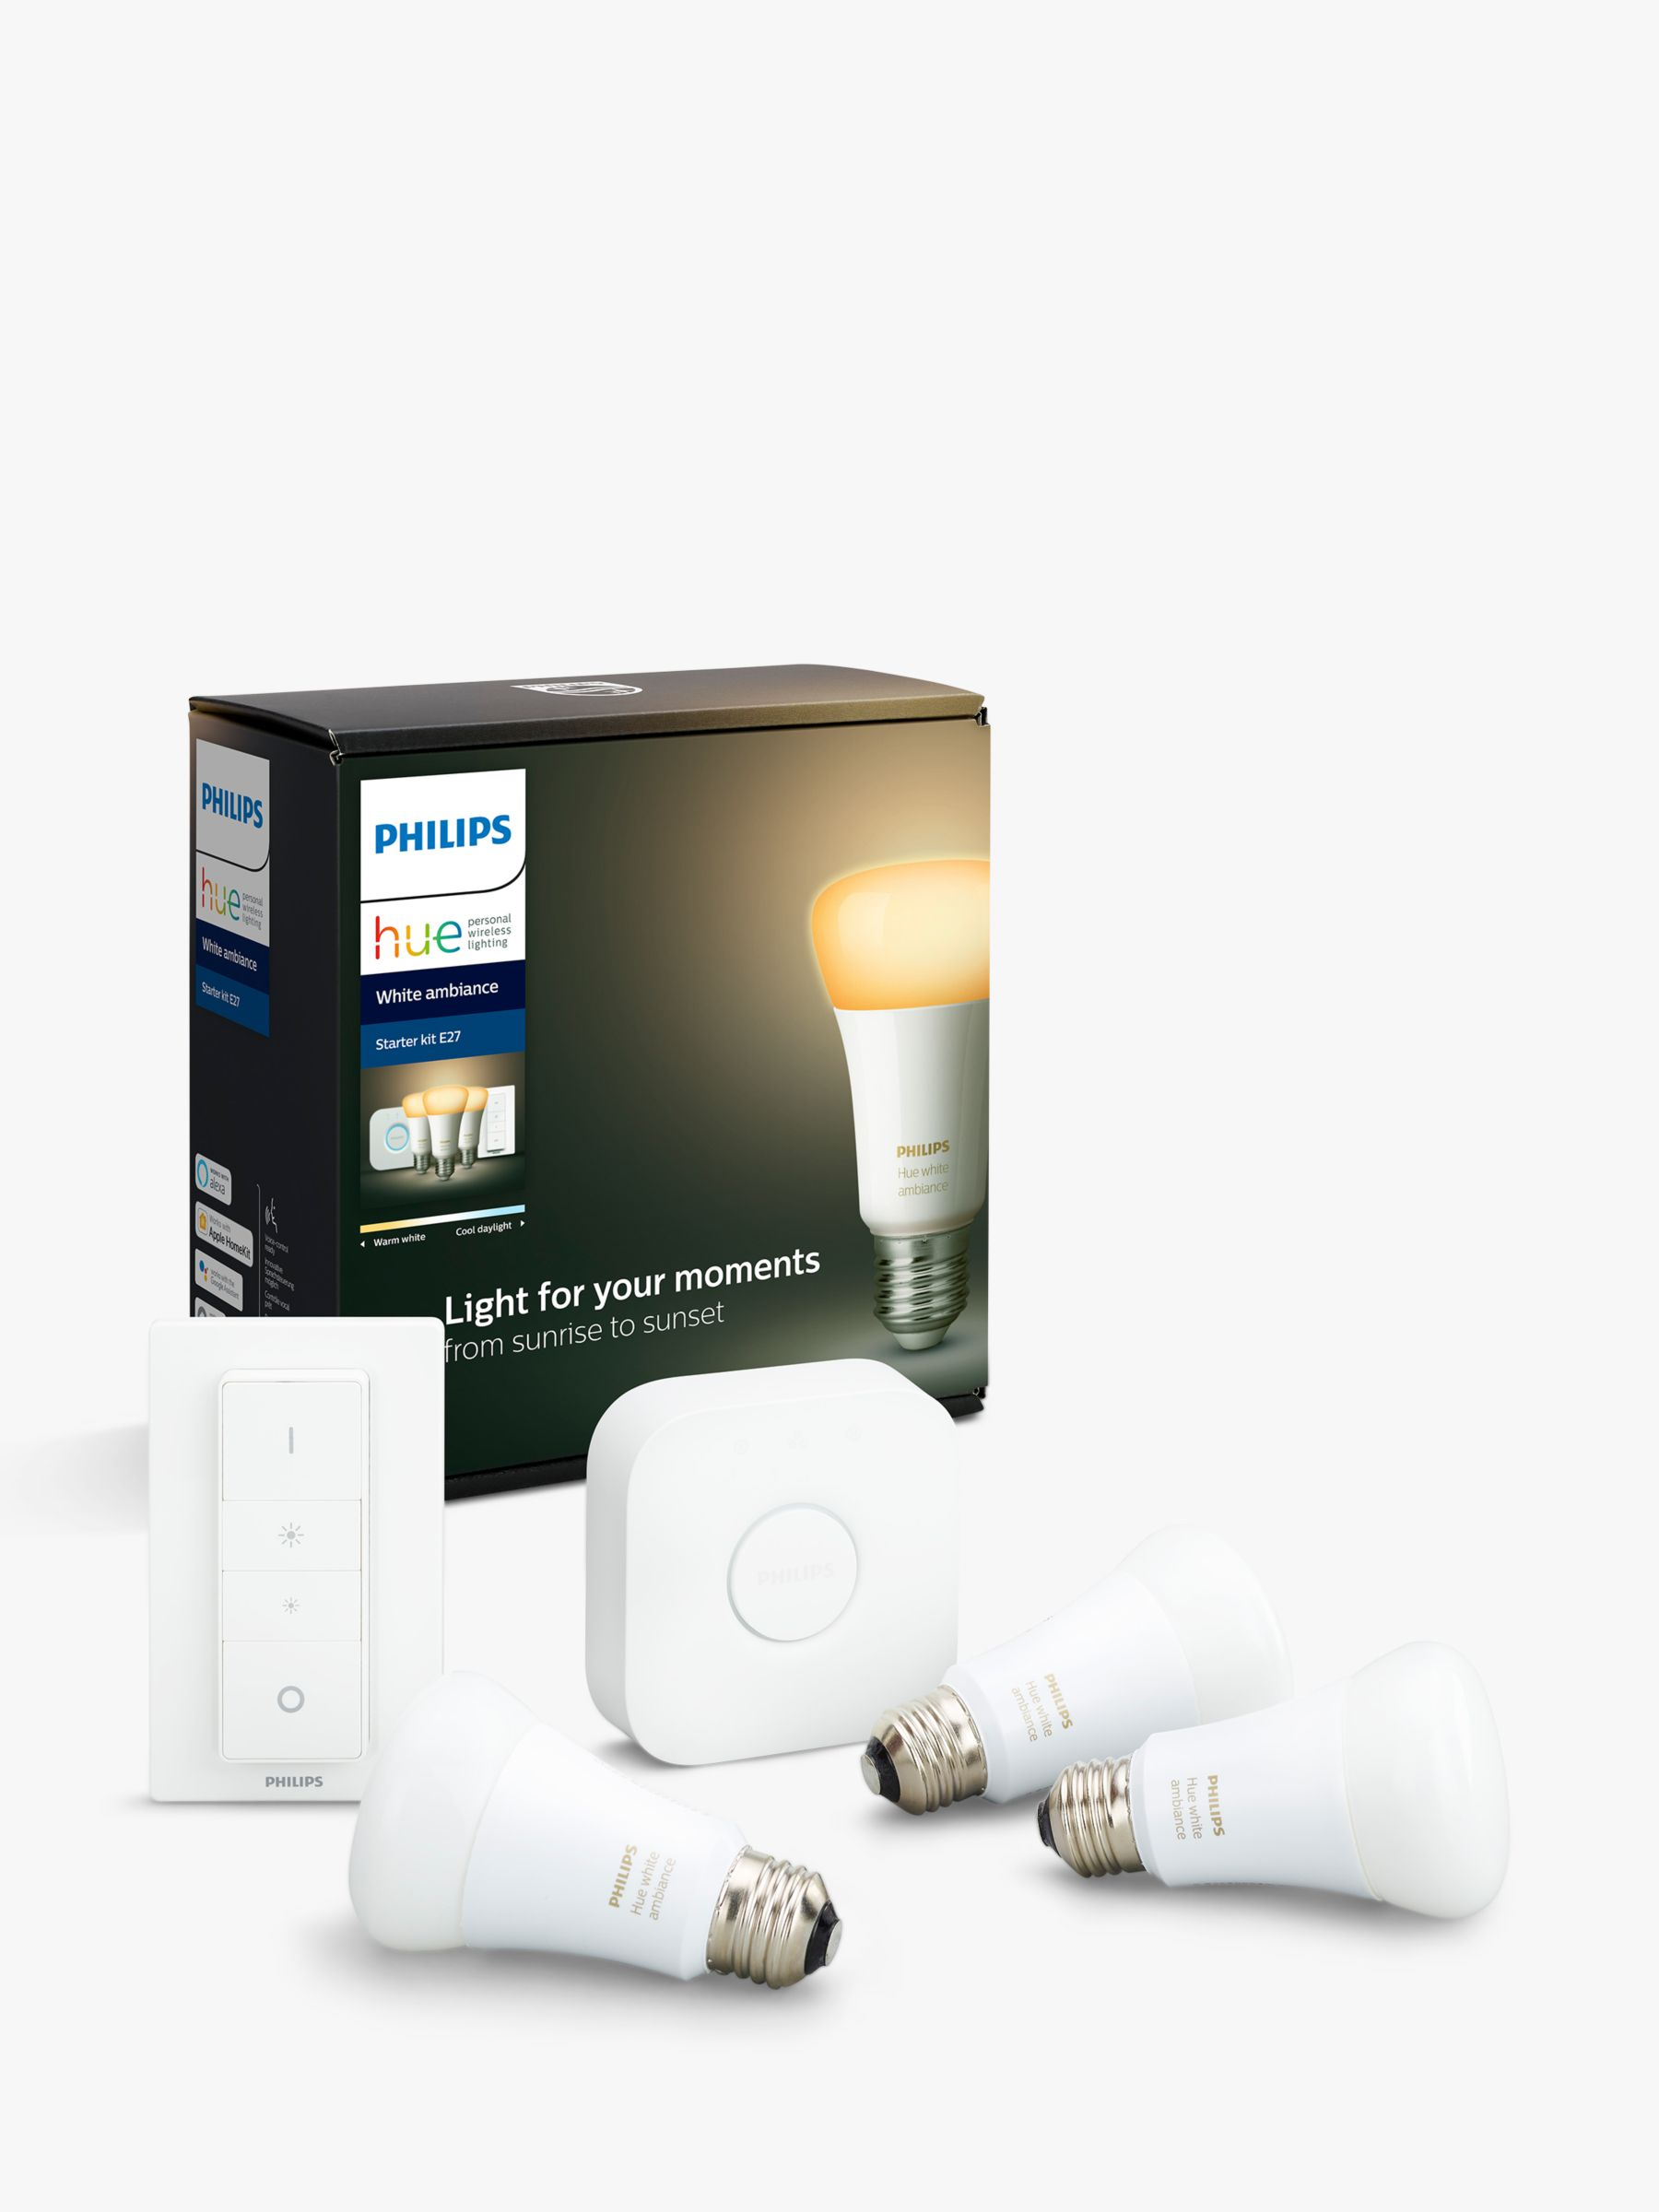 Philips Philips Hue White Ambiance Wireless Lighting LED Starter Kit with 3 E27 Bulbs with Bluetooth, Dimmer Switch & Bridge